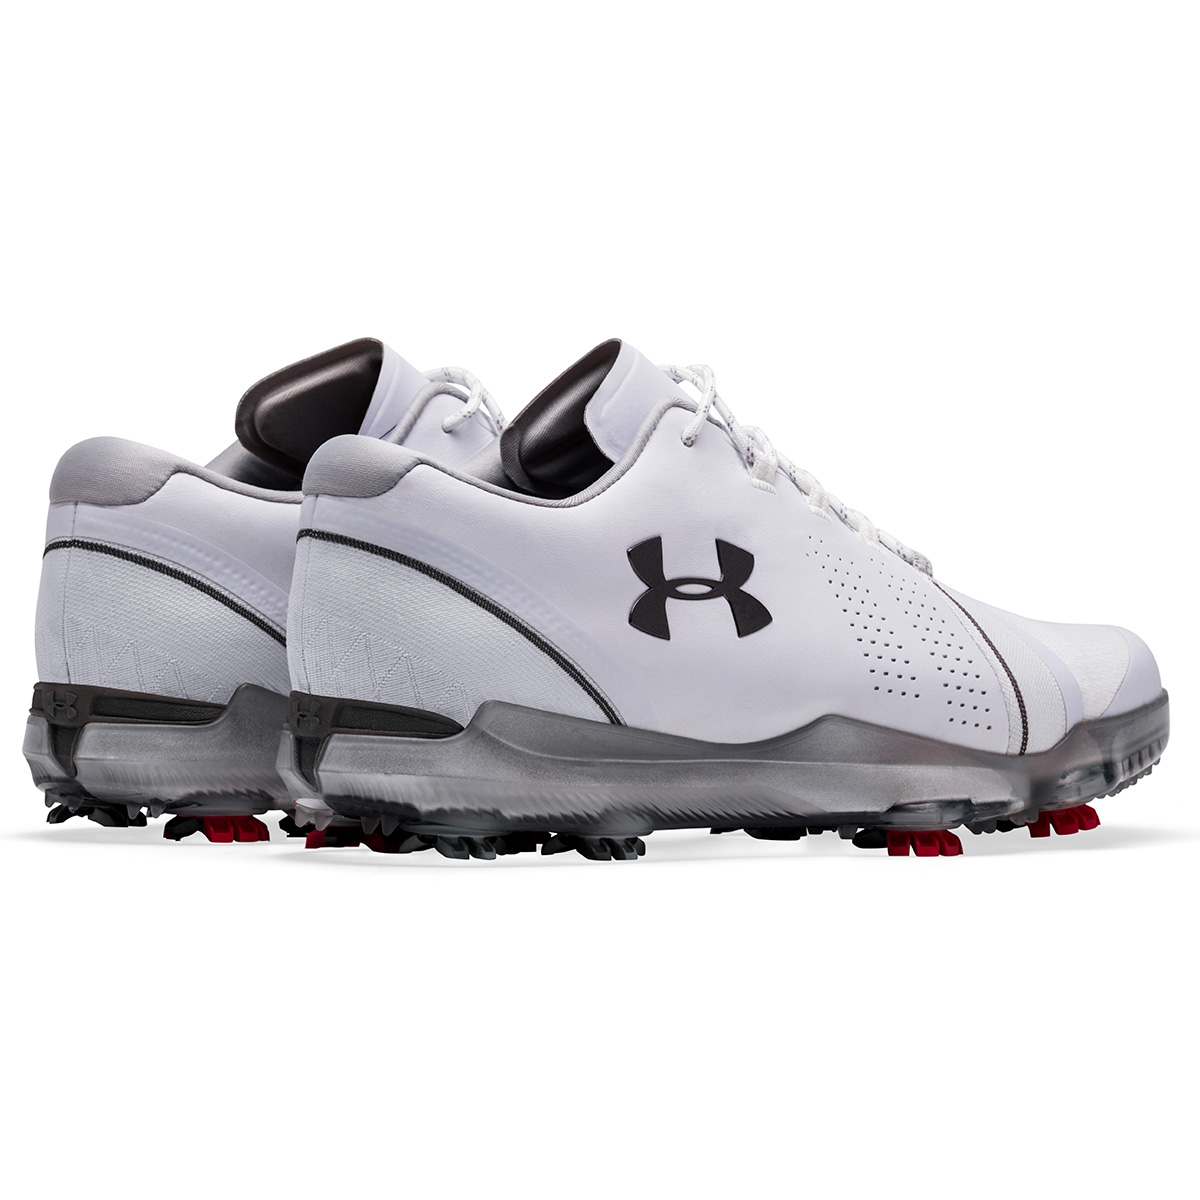 53c57be2f39 Under Armour Spieth 3 Shoes from american golf